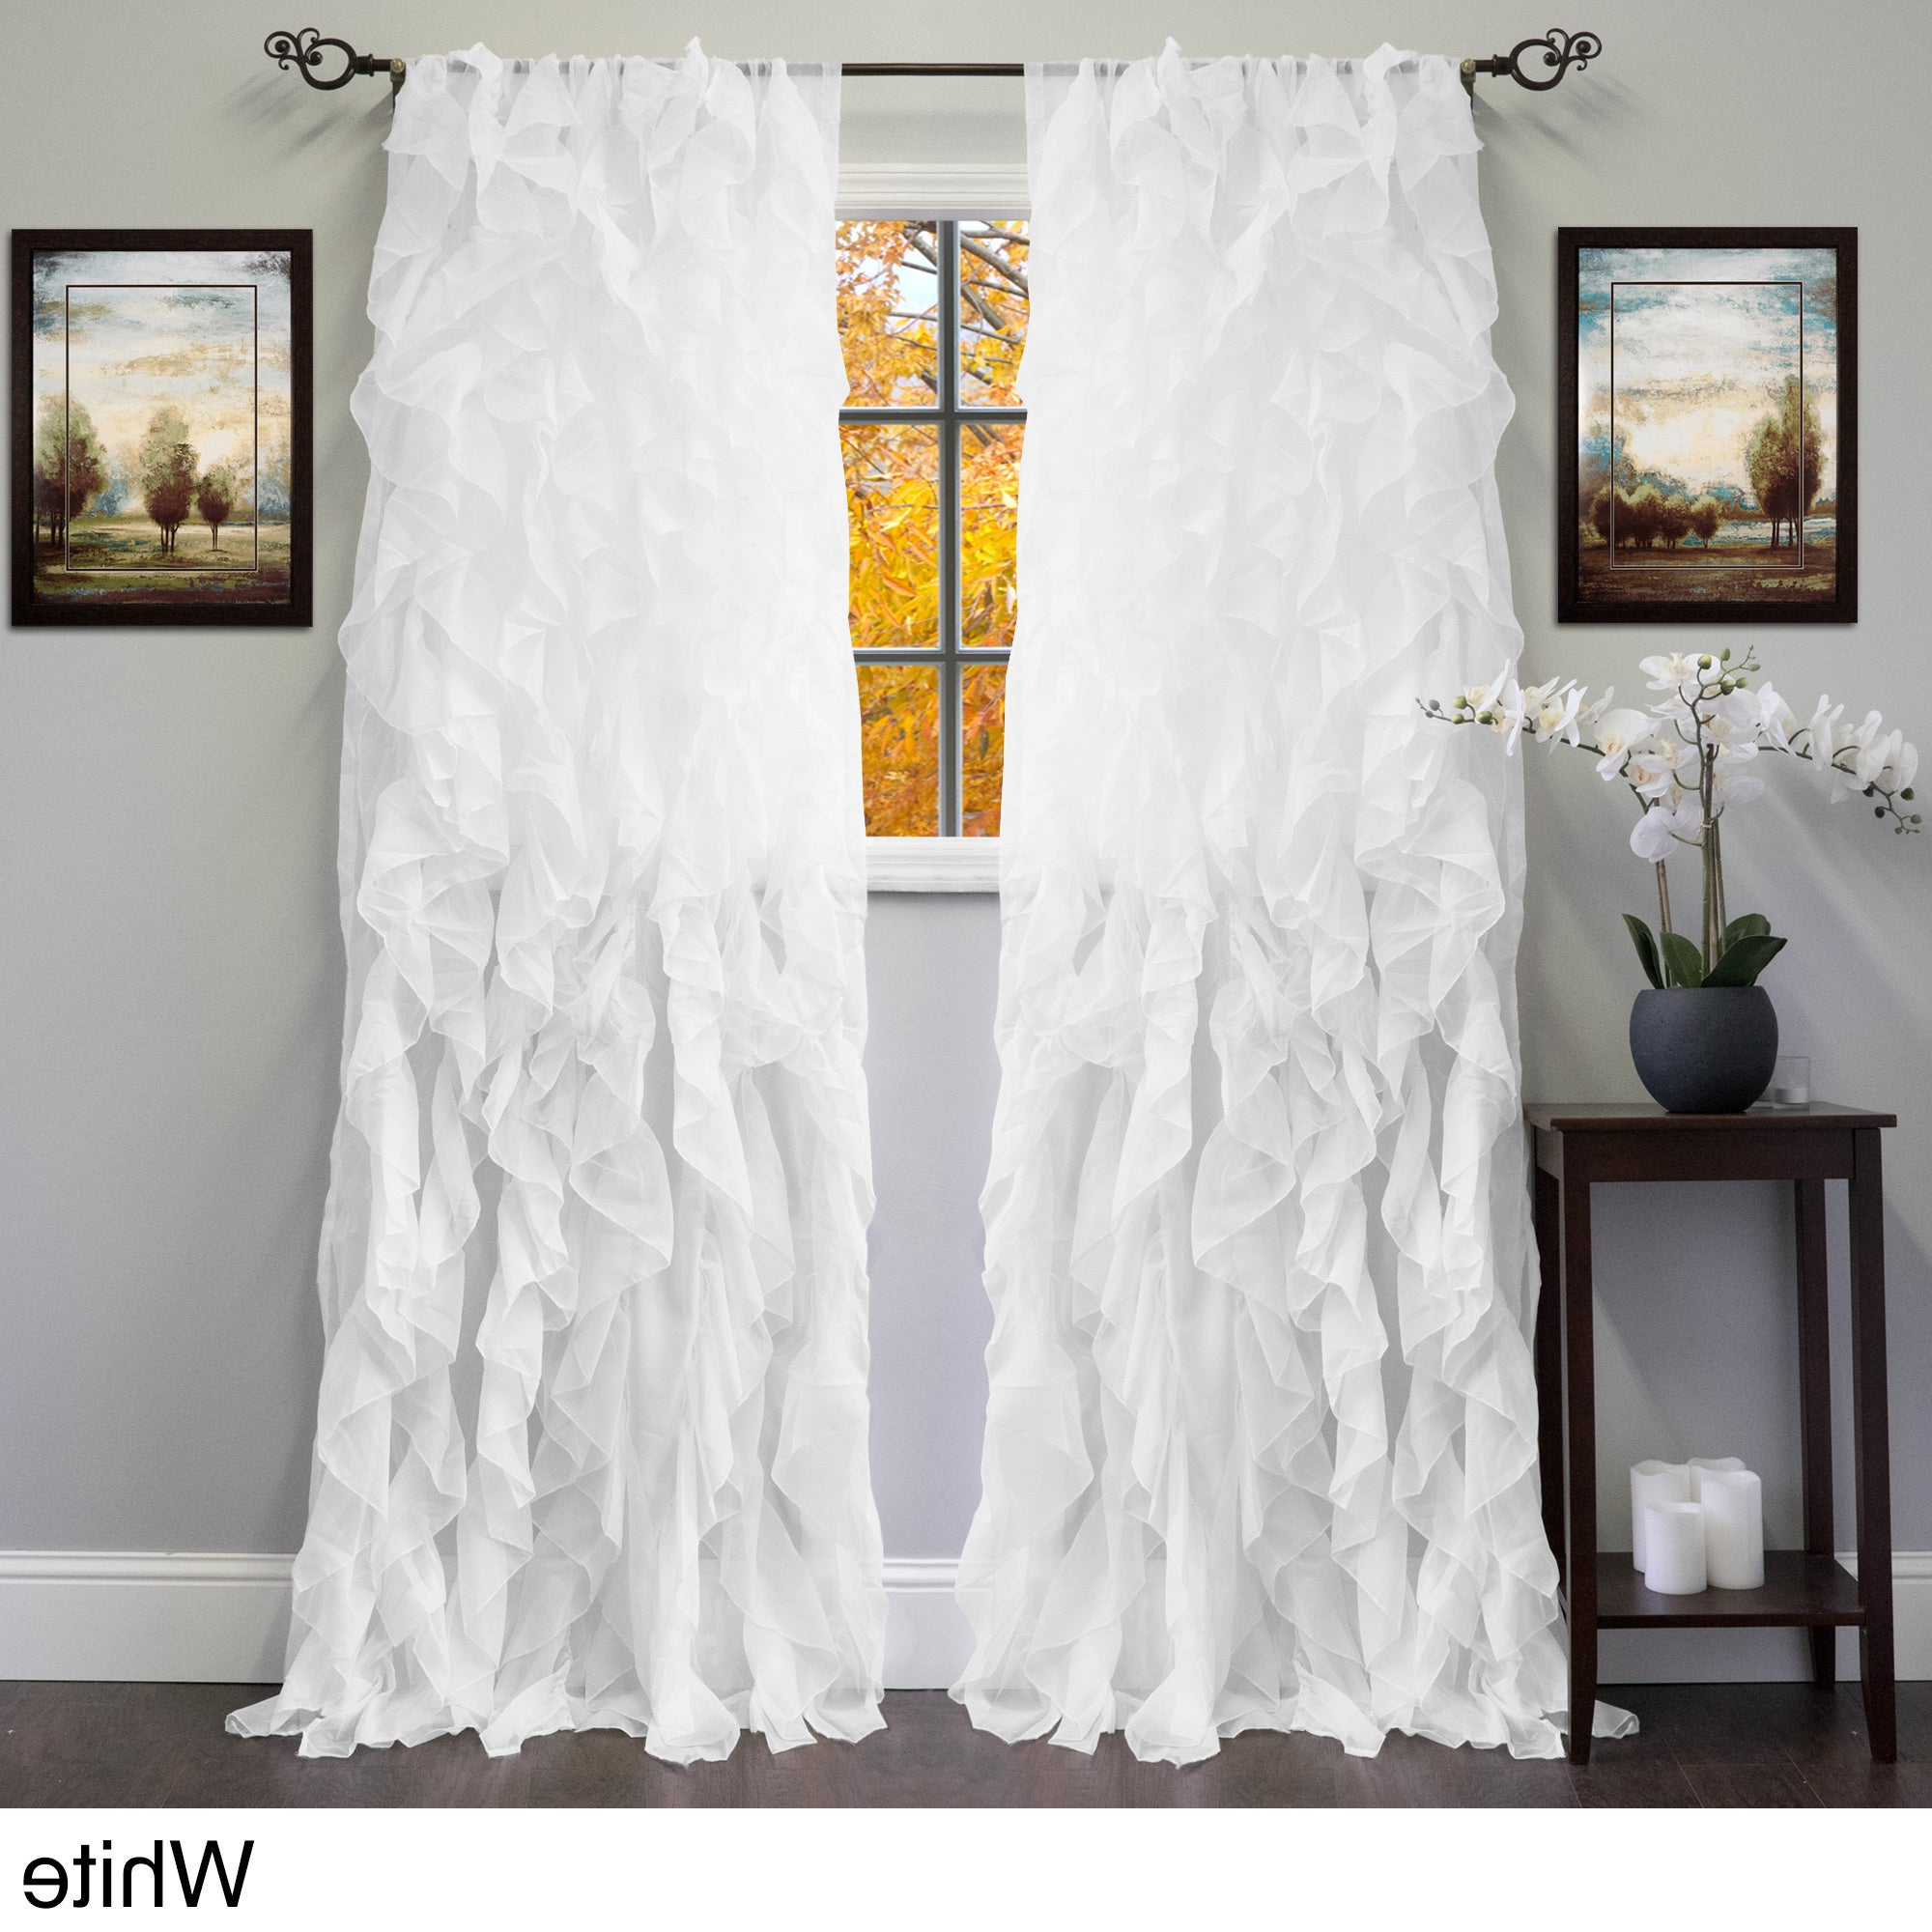 Featured Photo of Sheer Voile Ruffled Tier Window Curtain Panels